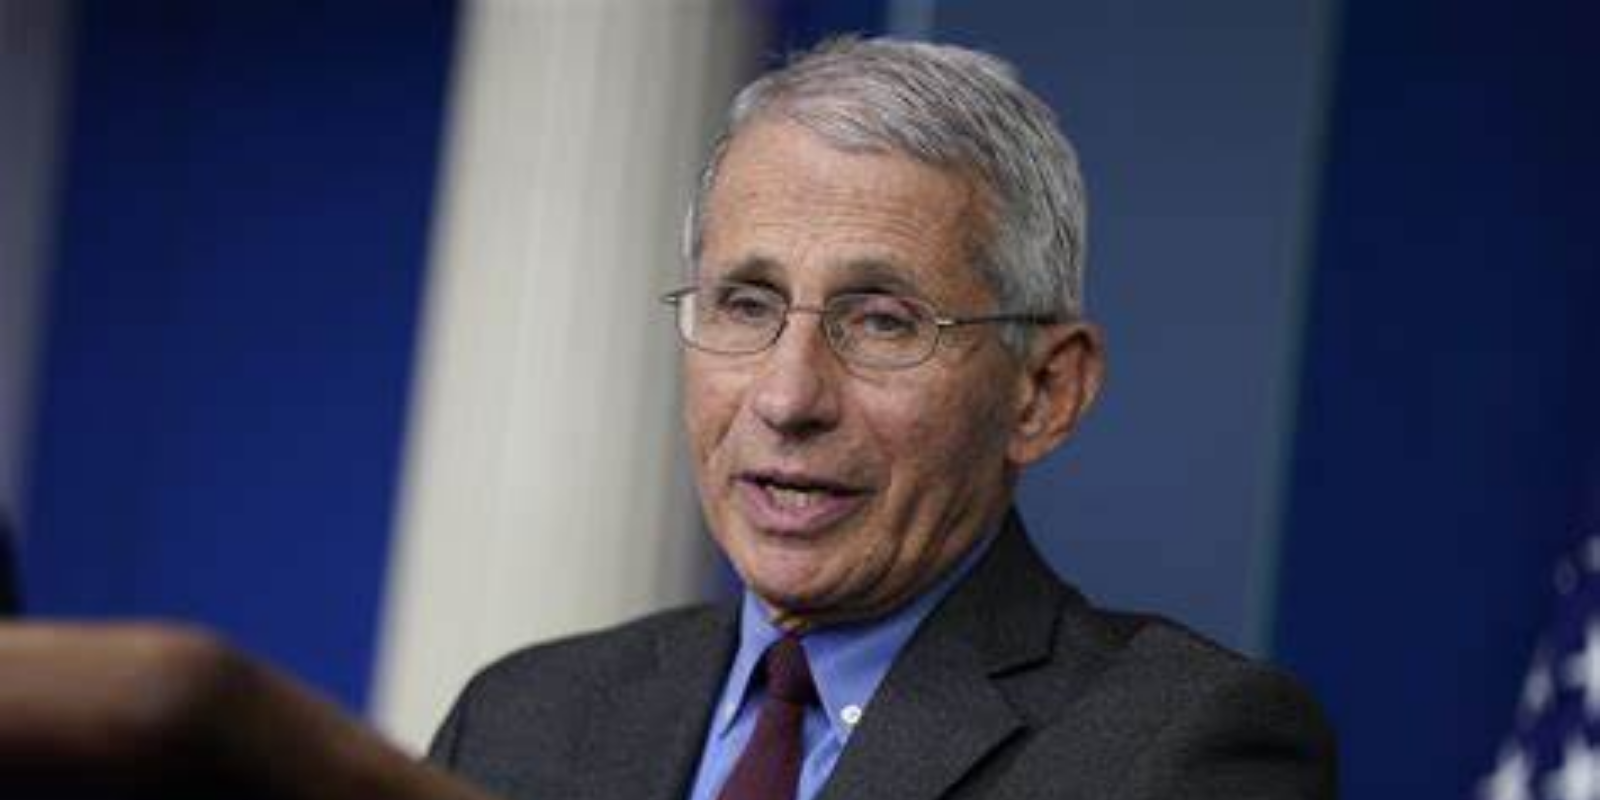 'Pain and suffering' ahead, says Fauci, imploring unvaccinated Americans to take the jab